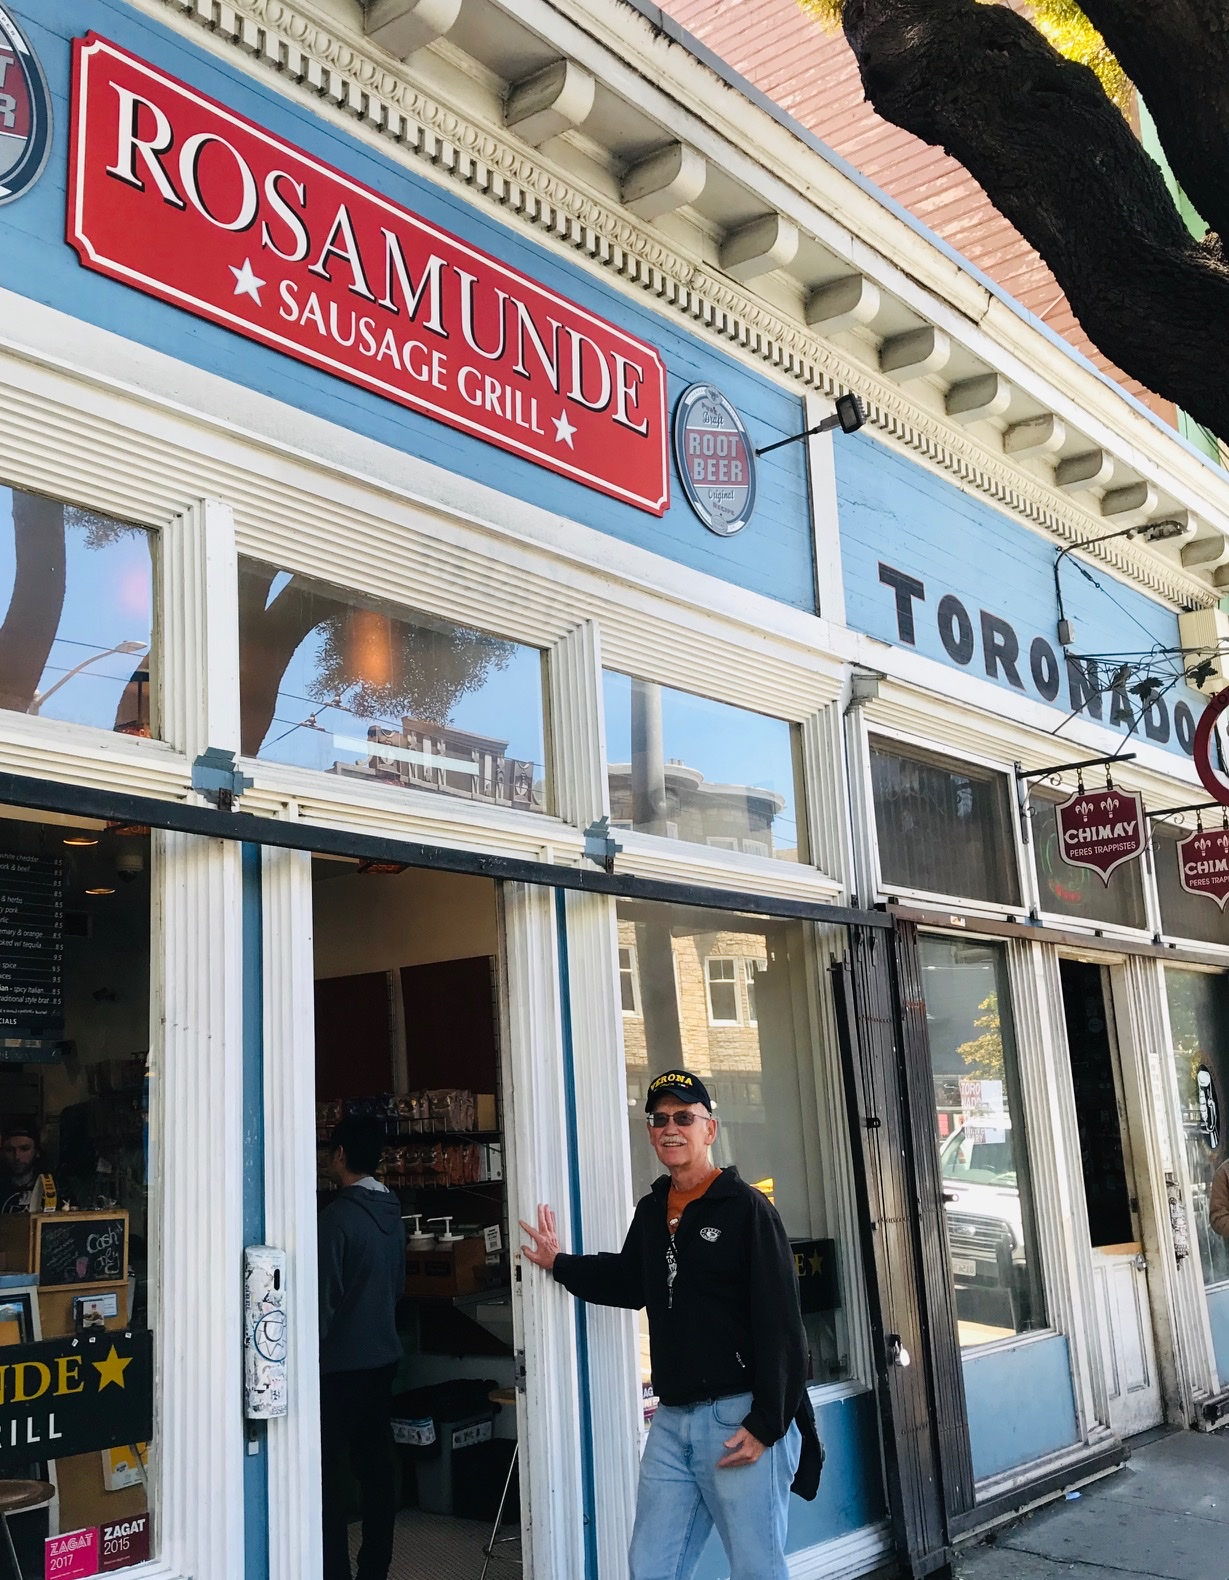 Rosamunde Grill in Lower Haight